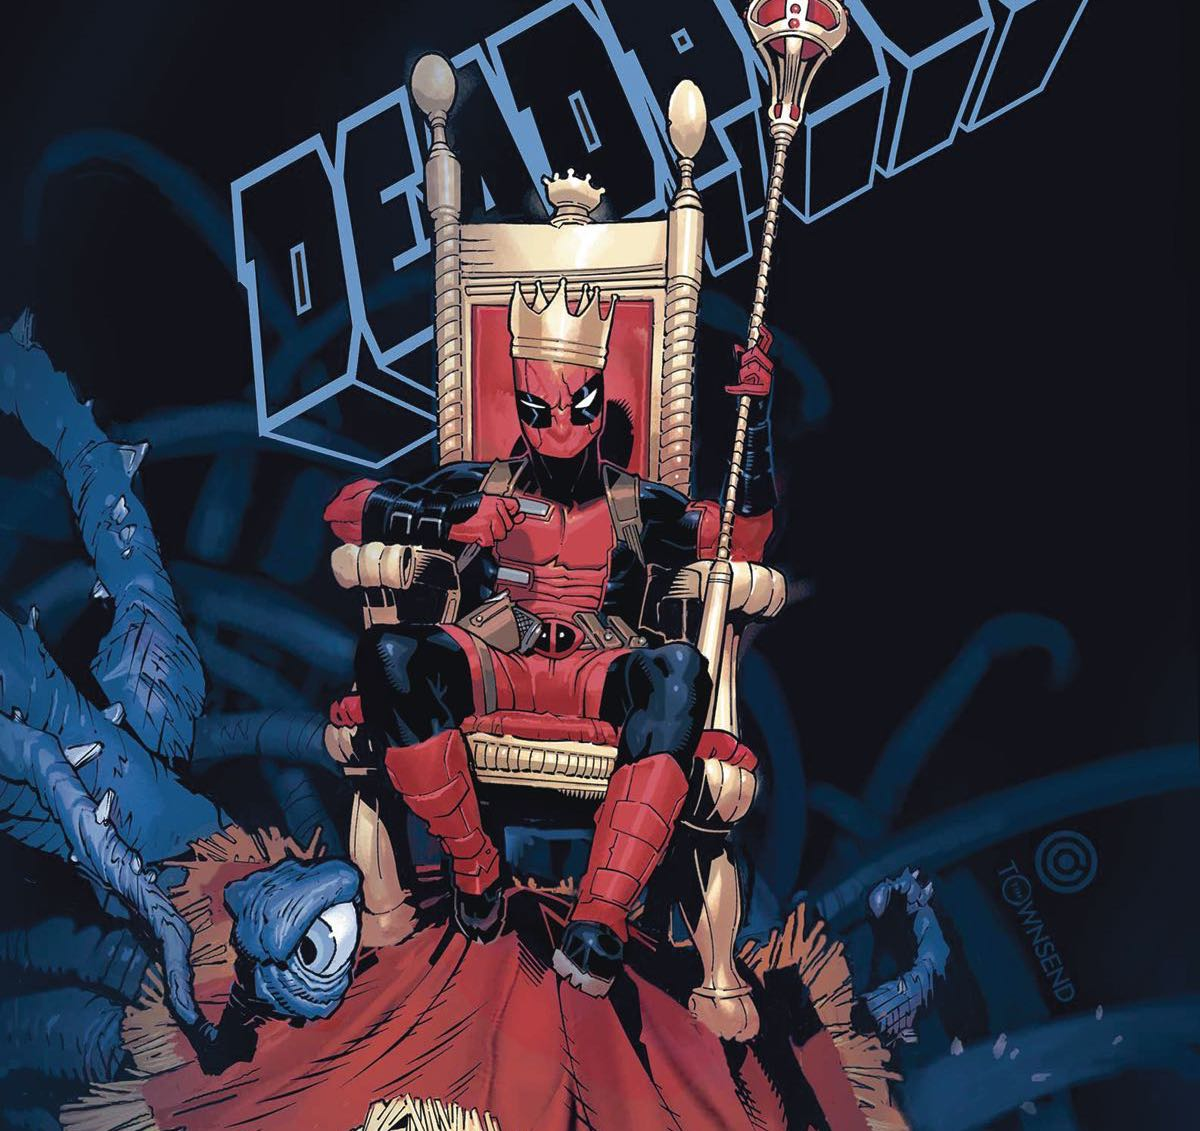 This is a fresh take on Deadpool thanks to a wild new situation for him to navigate.